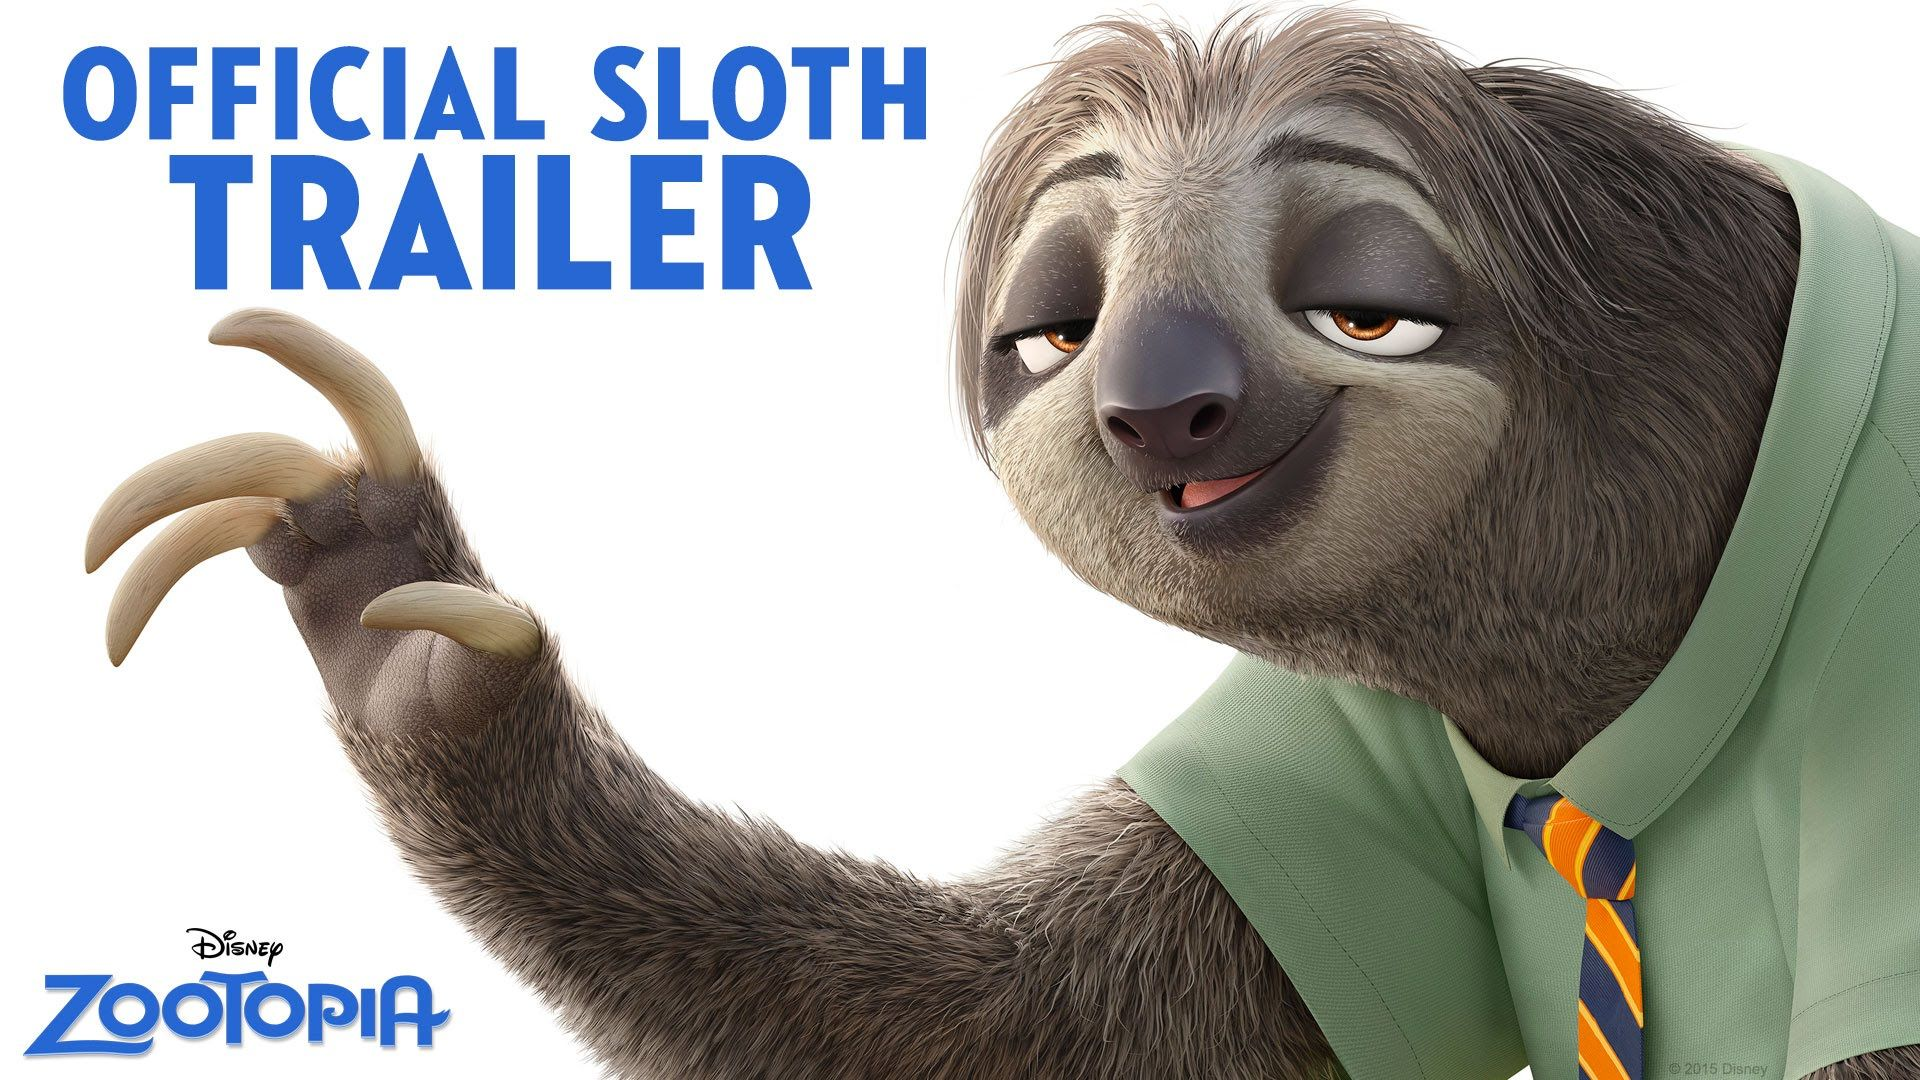 The new trailer for Zootopia is here! Watch now and see